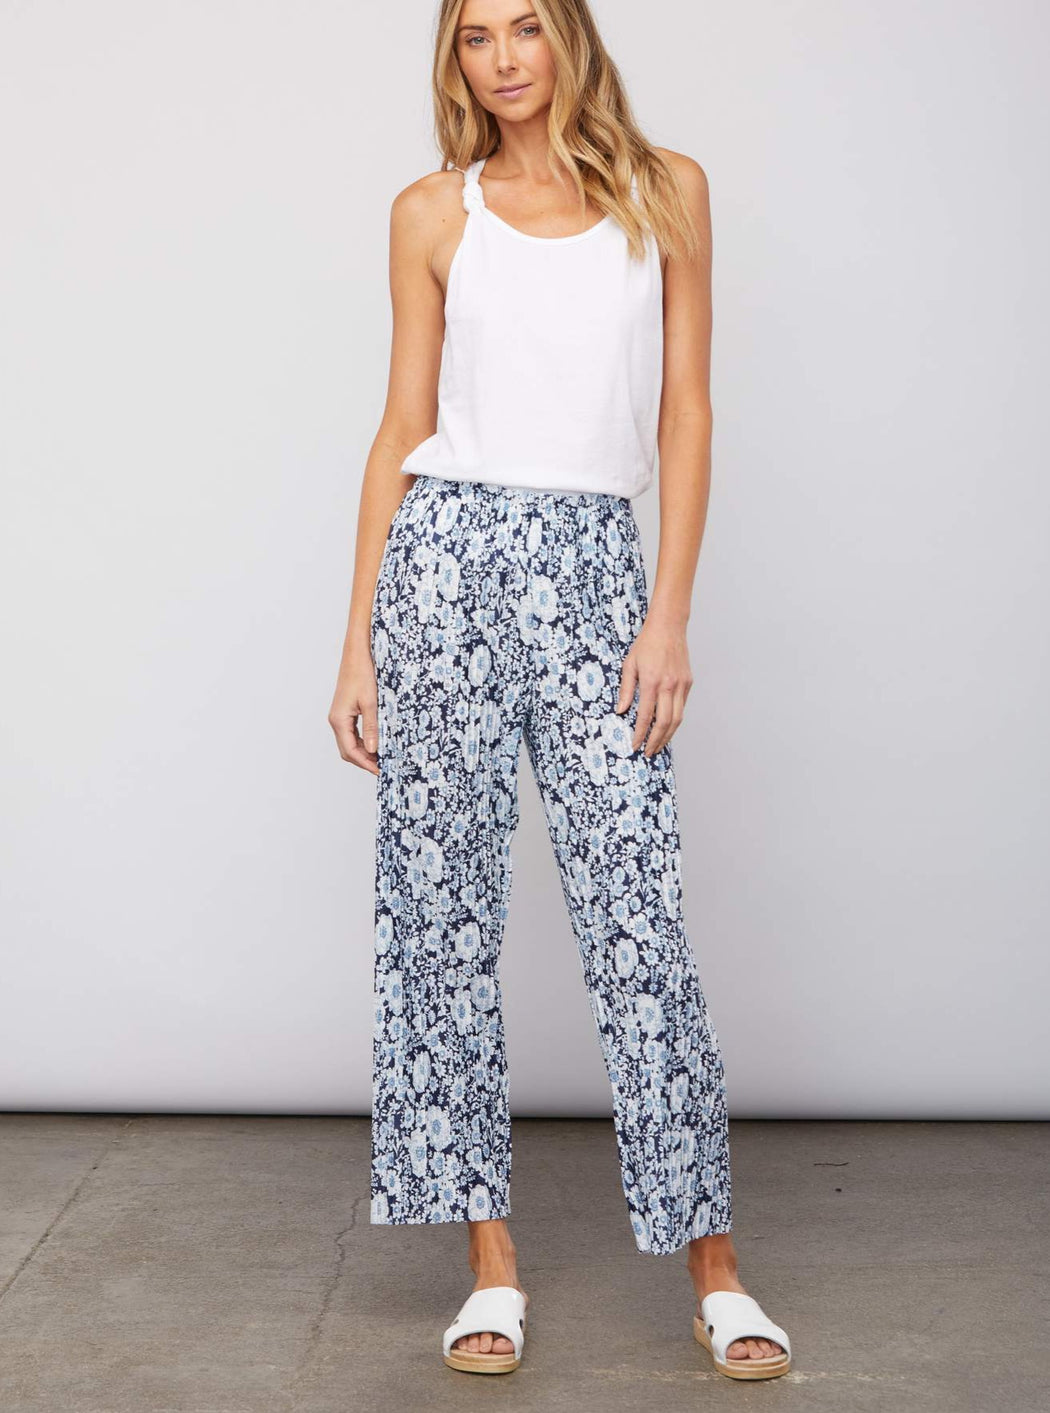 Sundays Swank Pant in Blue Floral